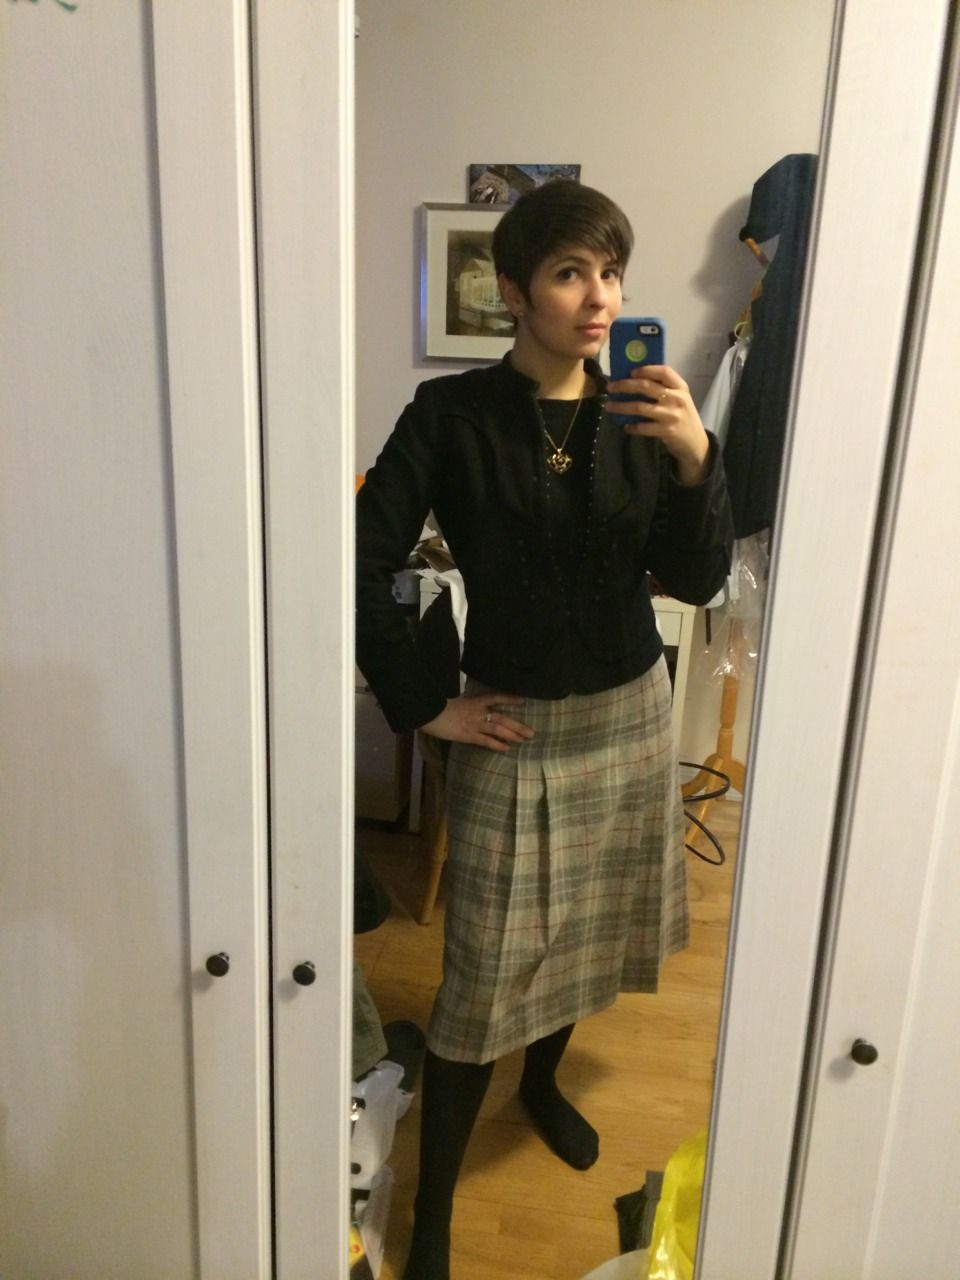 Work outfit the other day - trying out that trendy more demure skirt length.